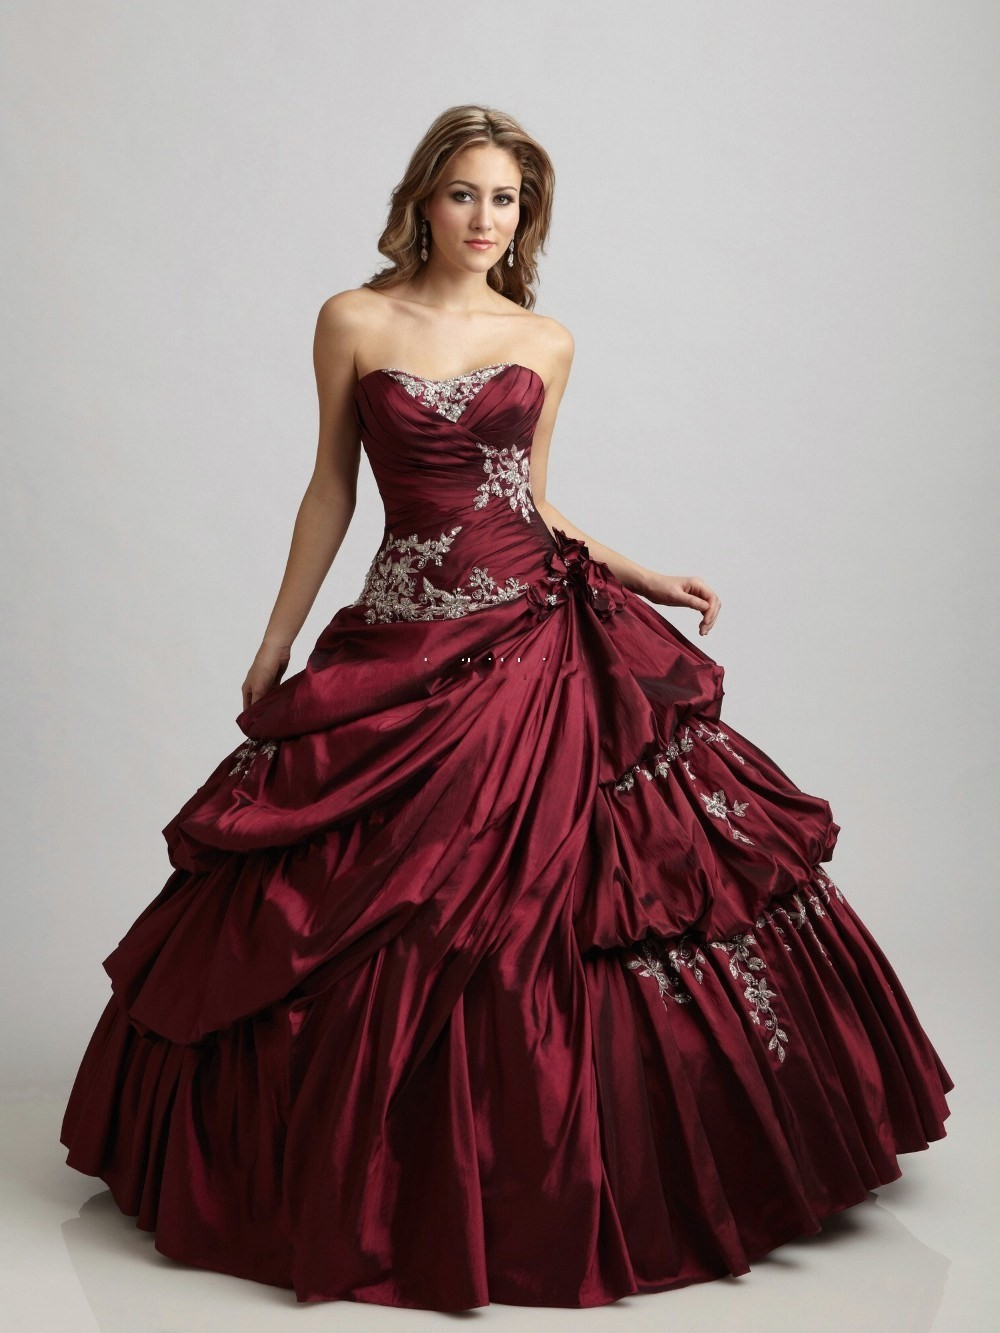 Cecelle 2016 vintage gothic burgundy royal blue ball gown for Wedding dress red colour